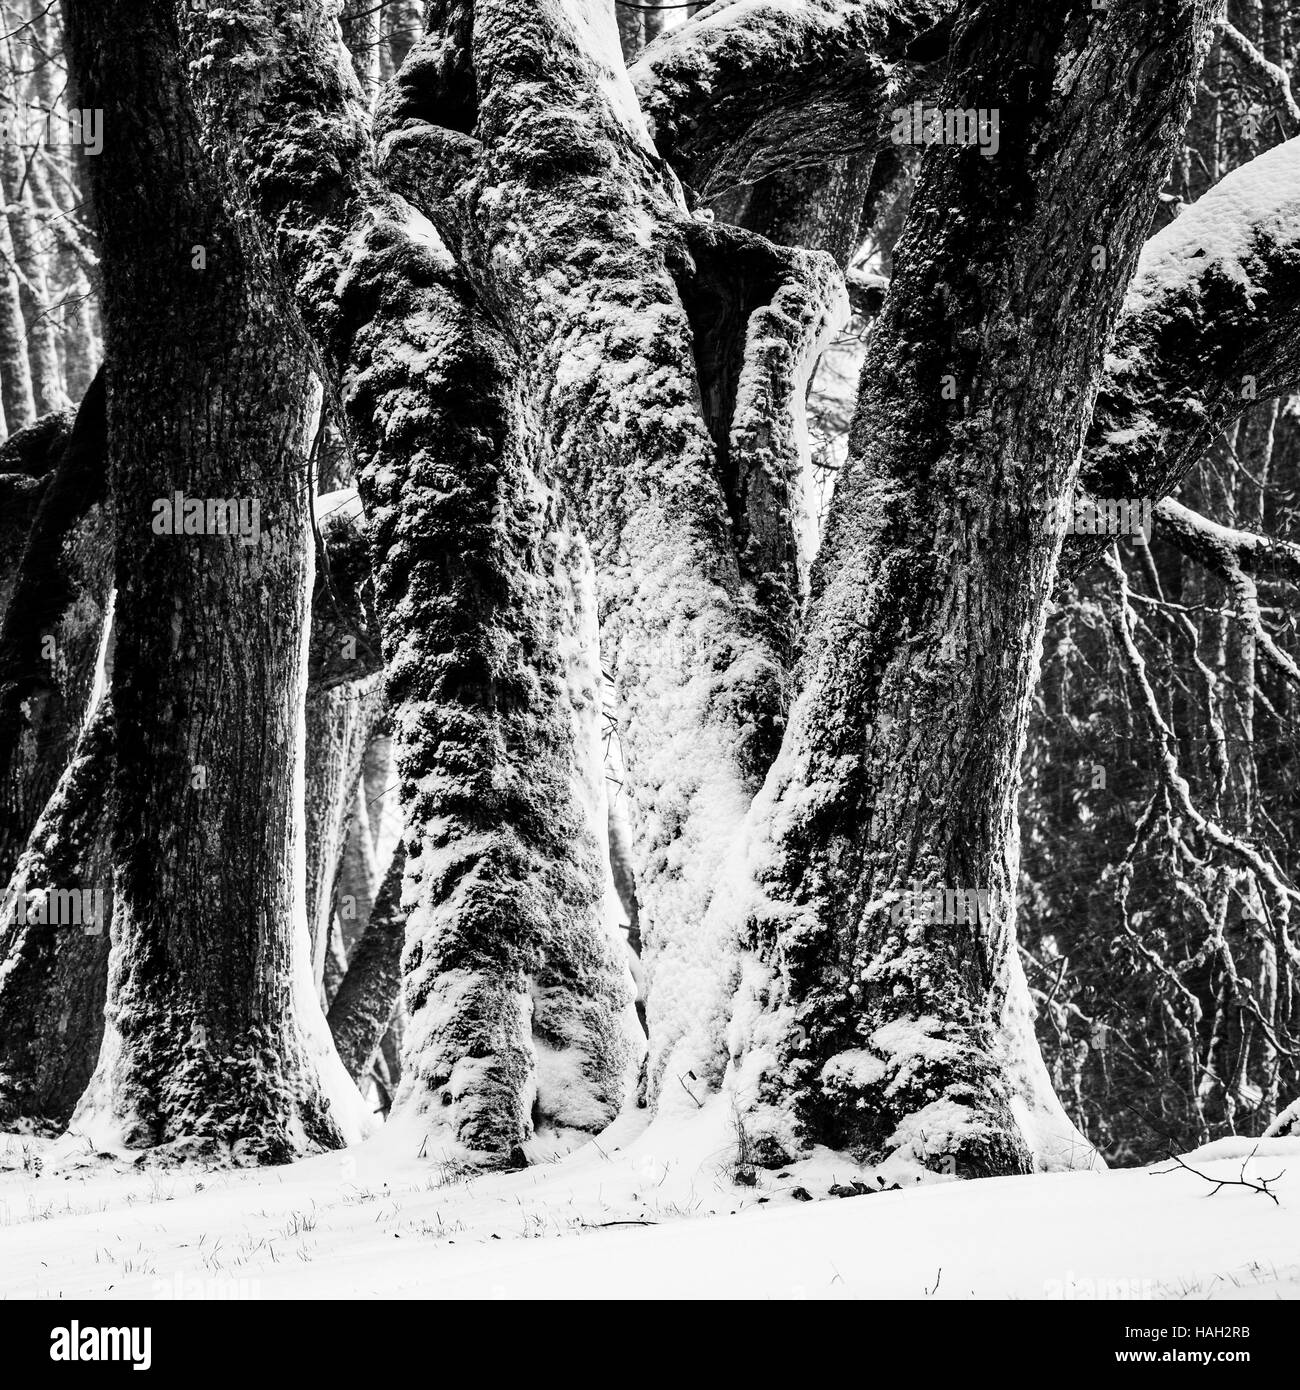 Stems of old Tilia trees in winter - Stock Image